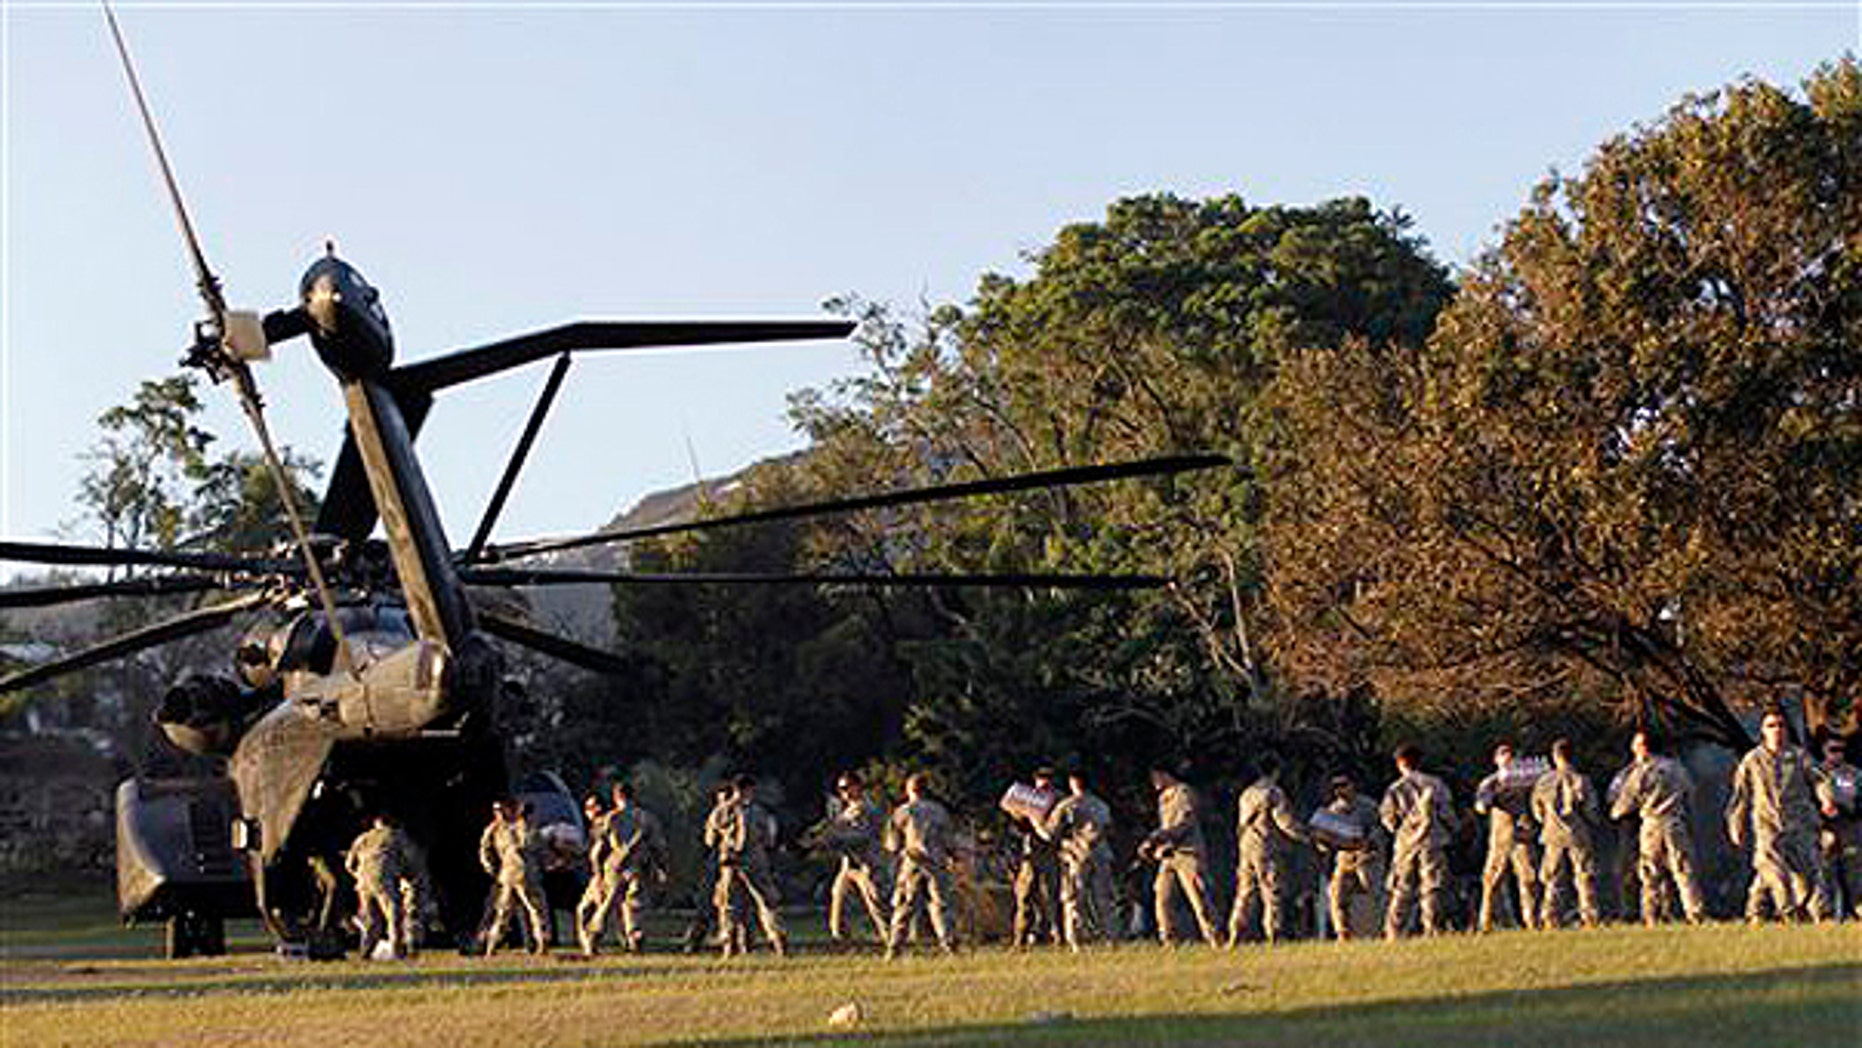 Monday: U.S. troops with the 82nd Airborne Division unload disaster relief supplies in Port-au-Prince. Troops, doctors and aid workers flowed into Haiti on Monday even while hundreds of thousands of Tuesday's quake victims struggled to find water or food. (AP Photo)